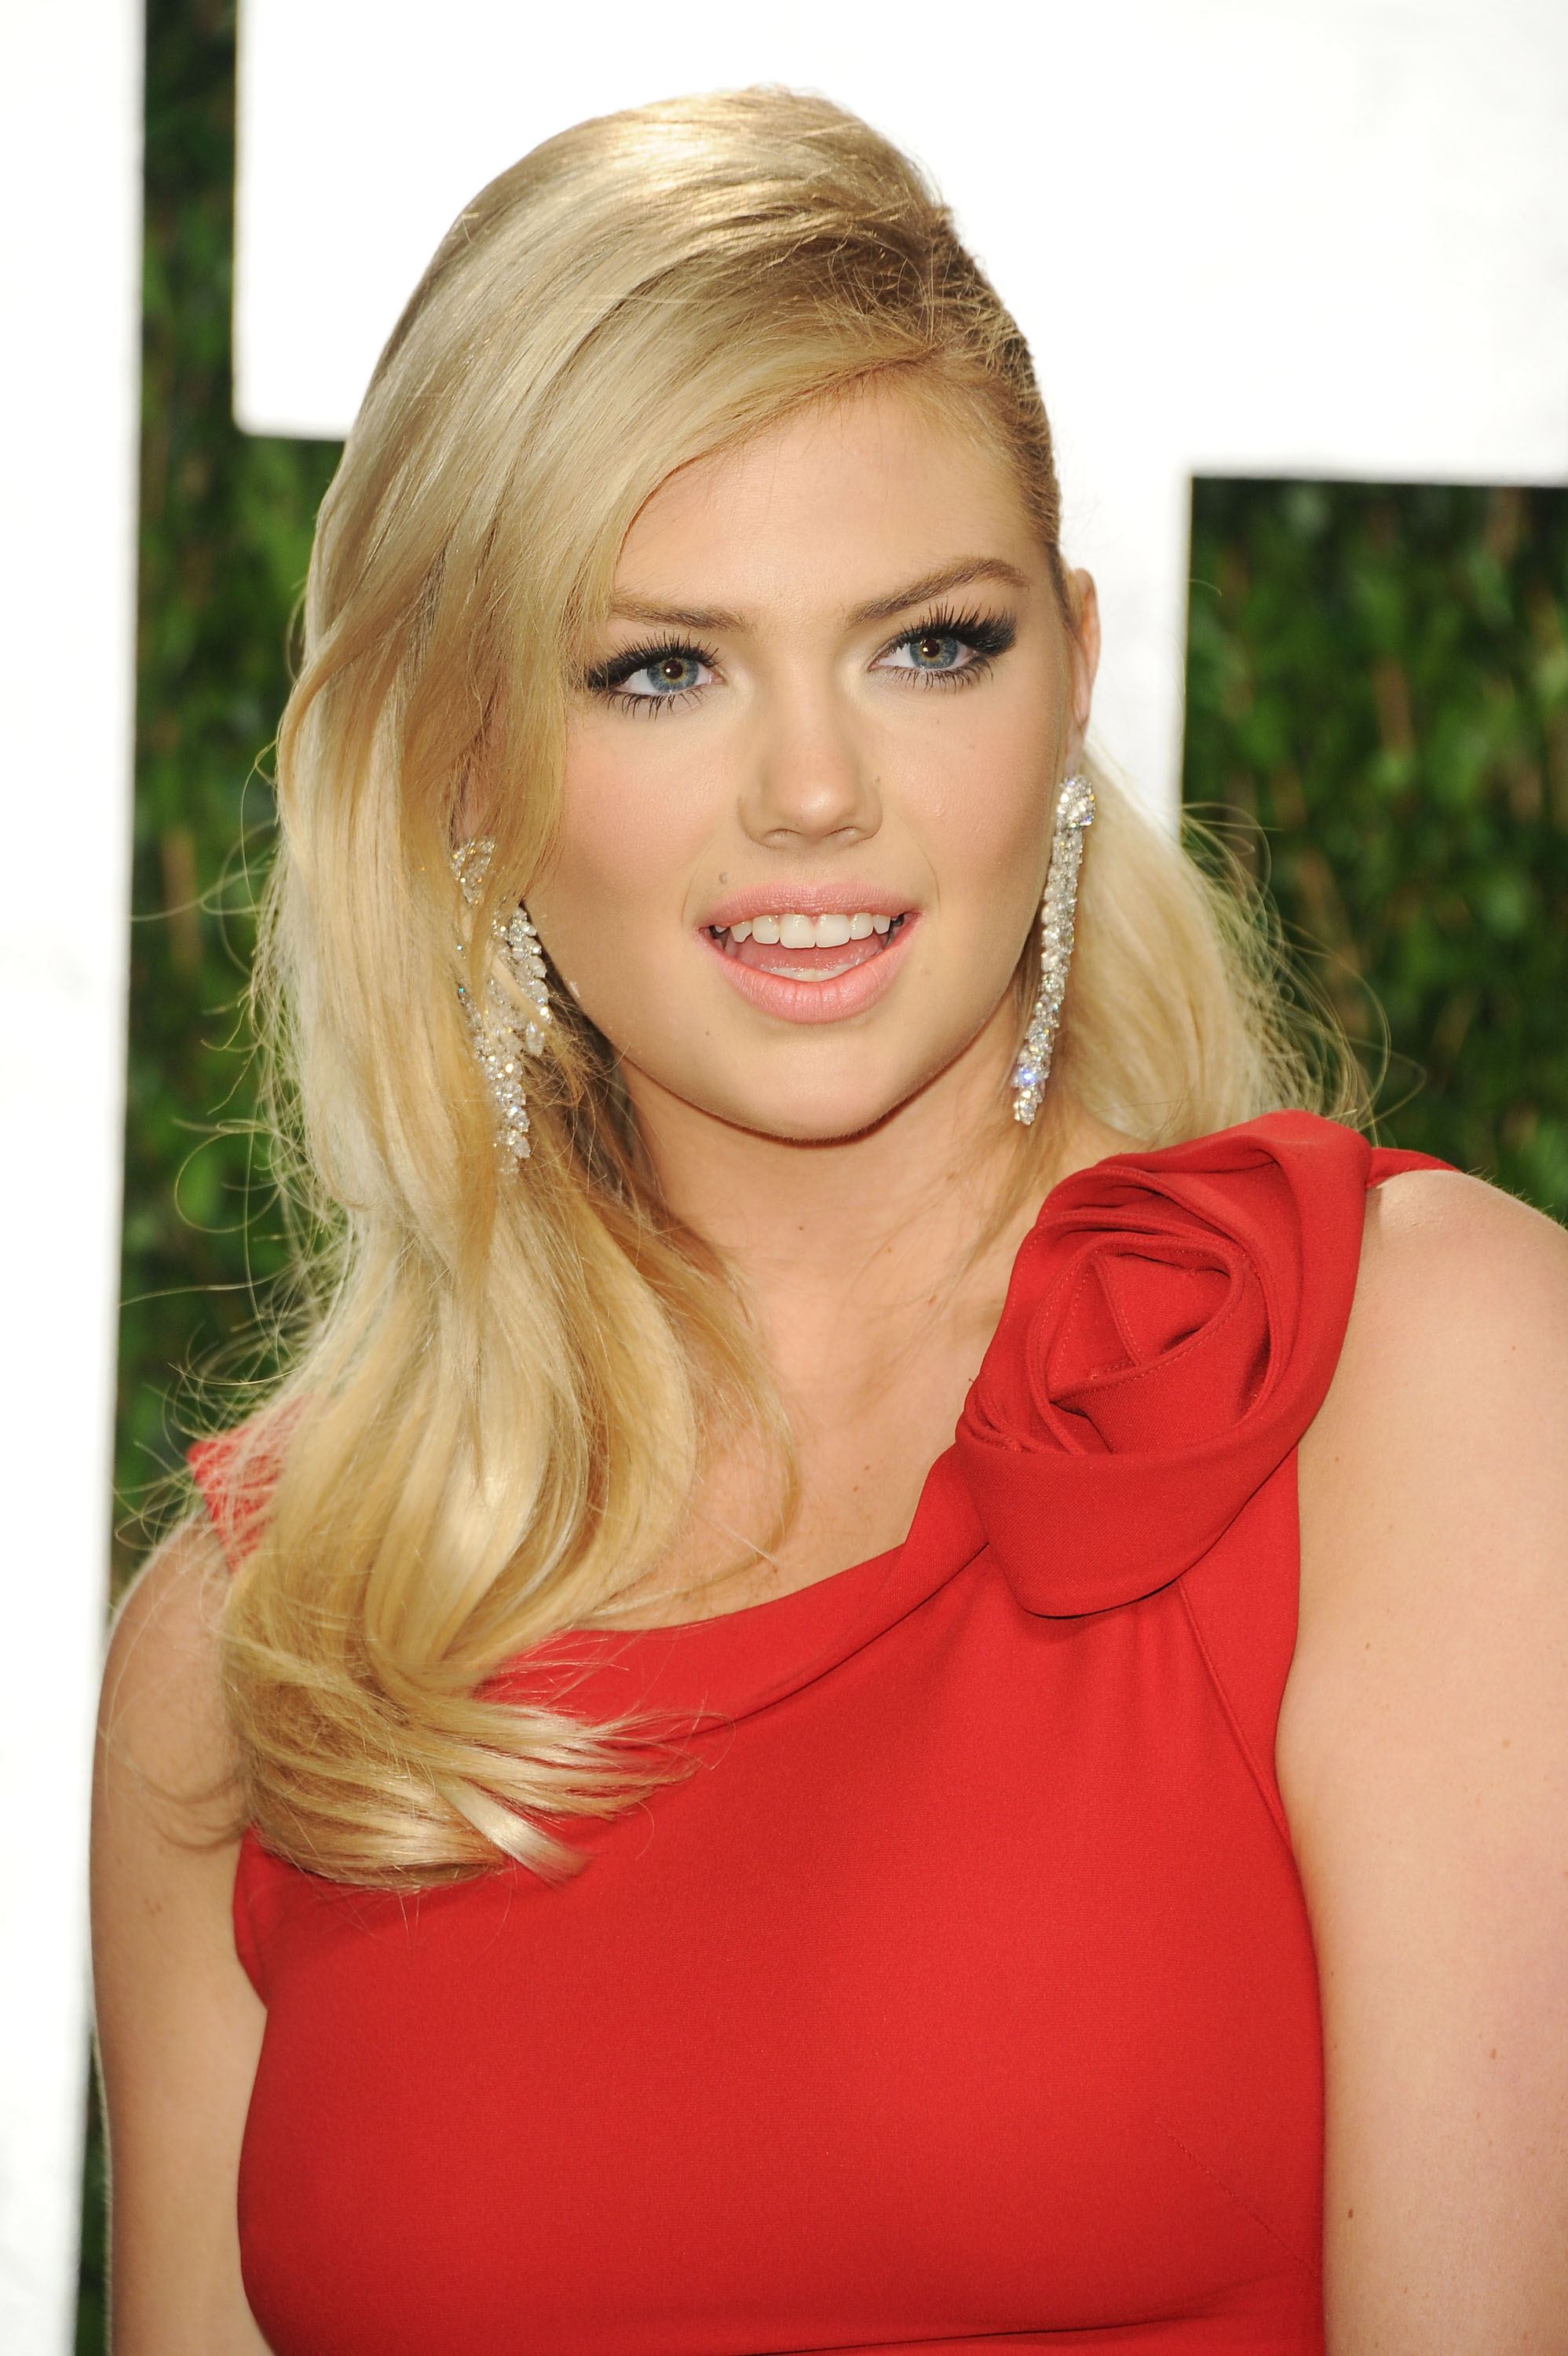 USA Hot Actress/Model Kate Upton Biography 2014 LiveTV.pk